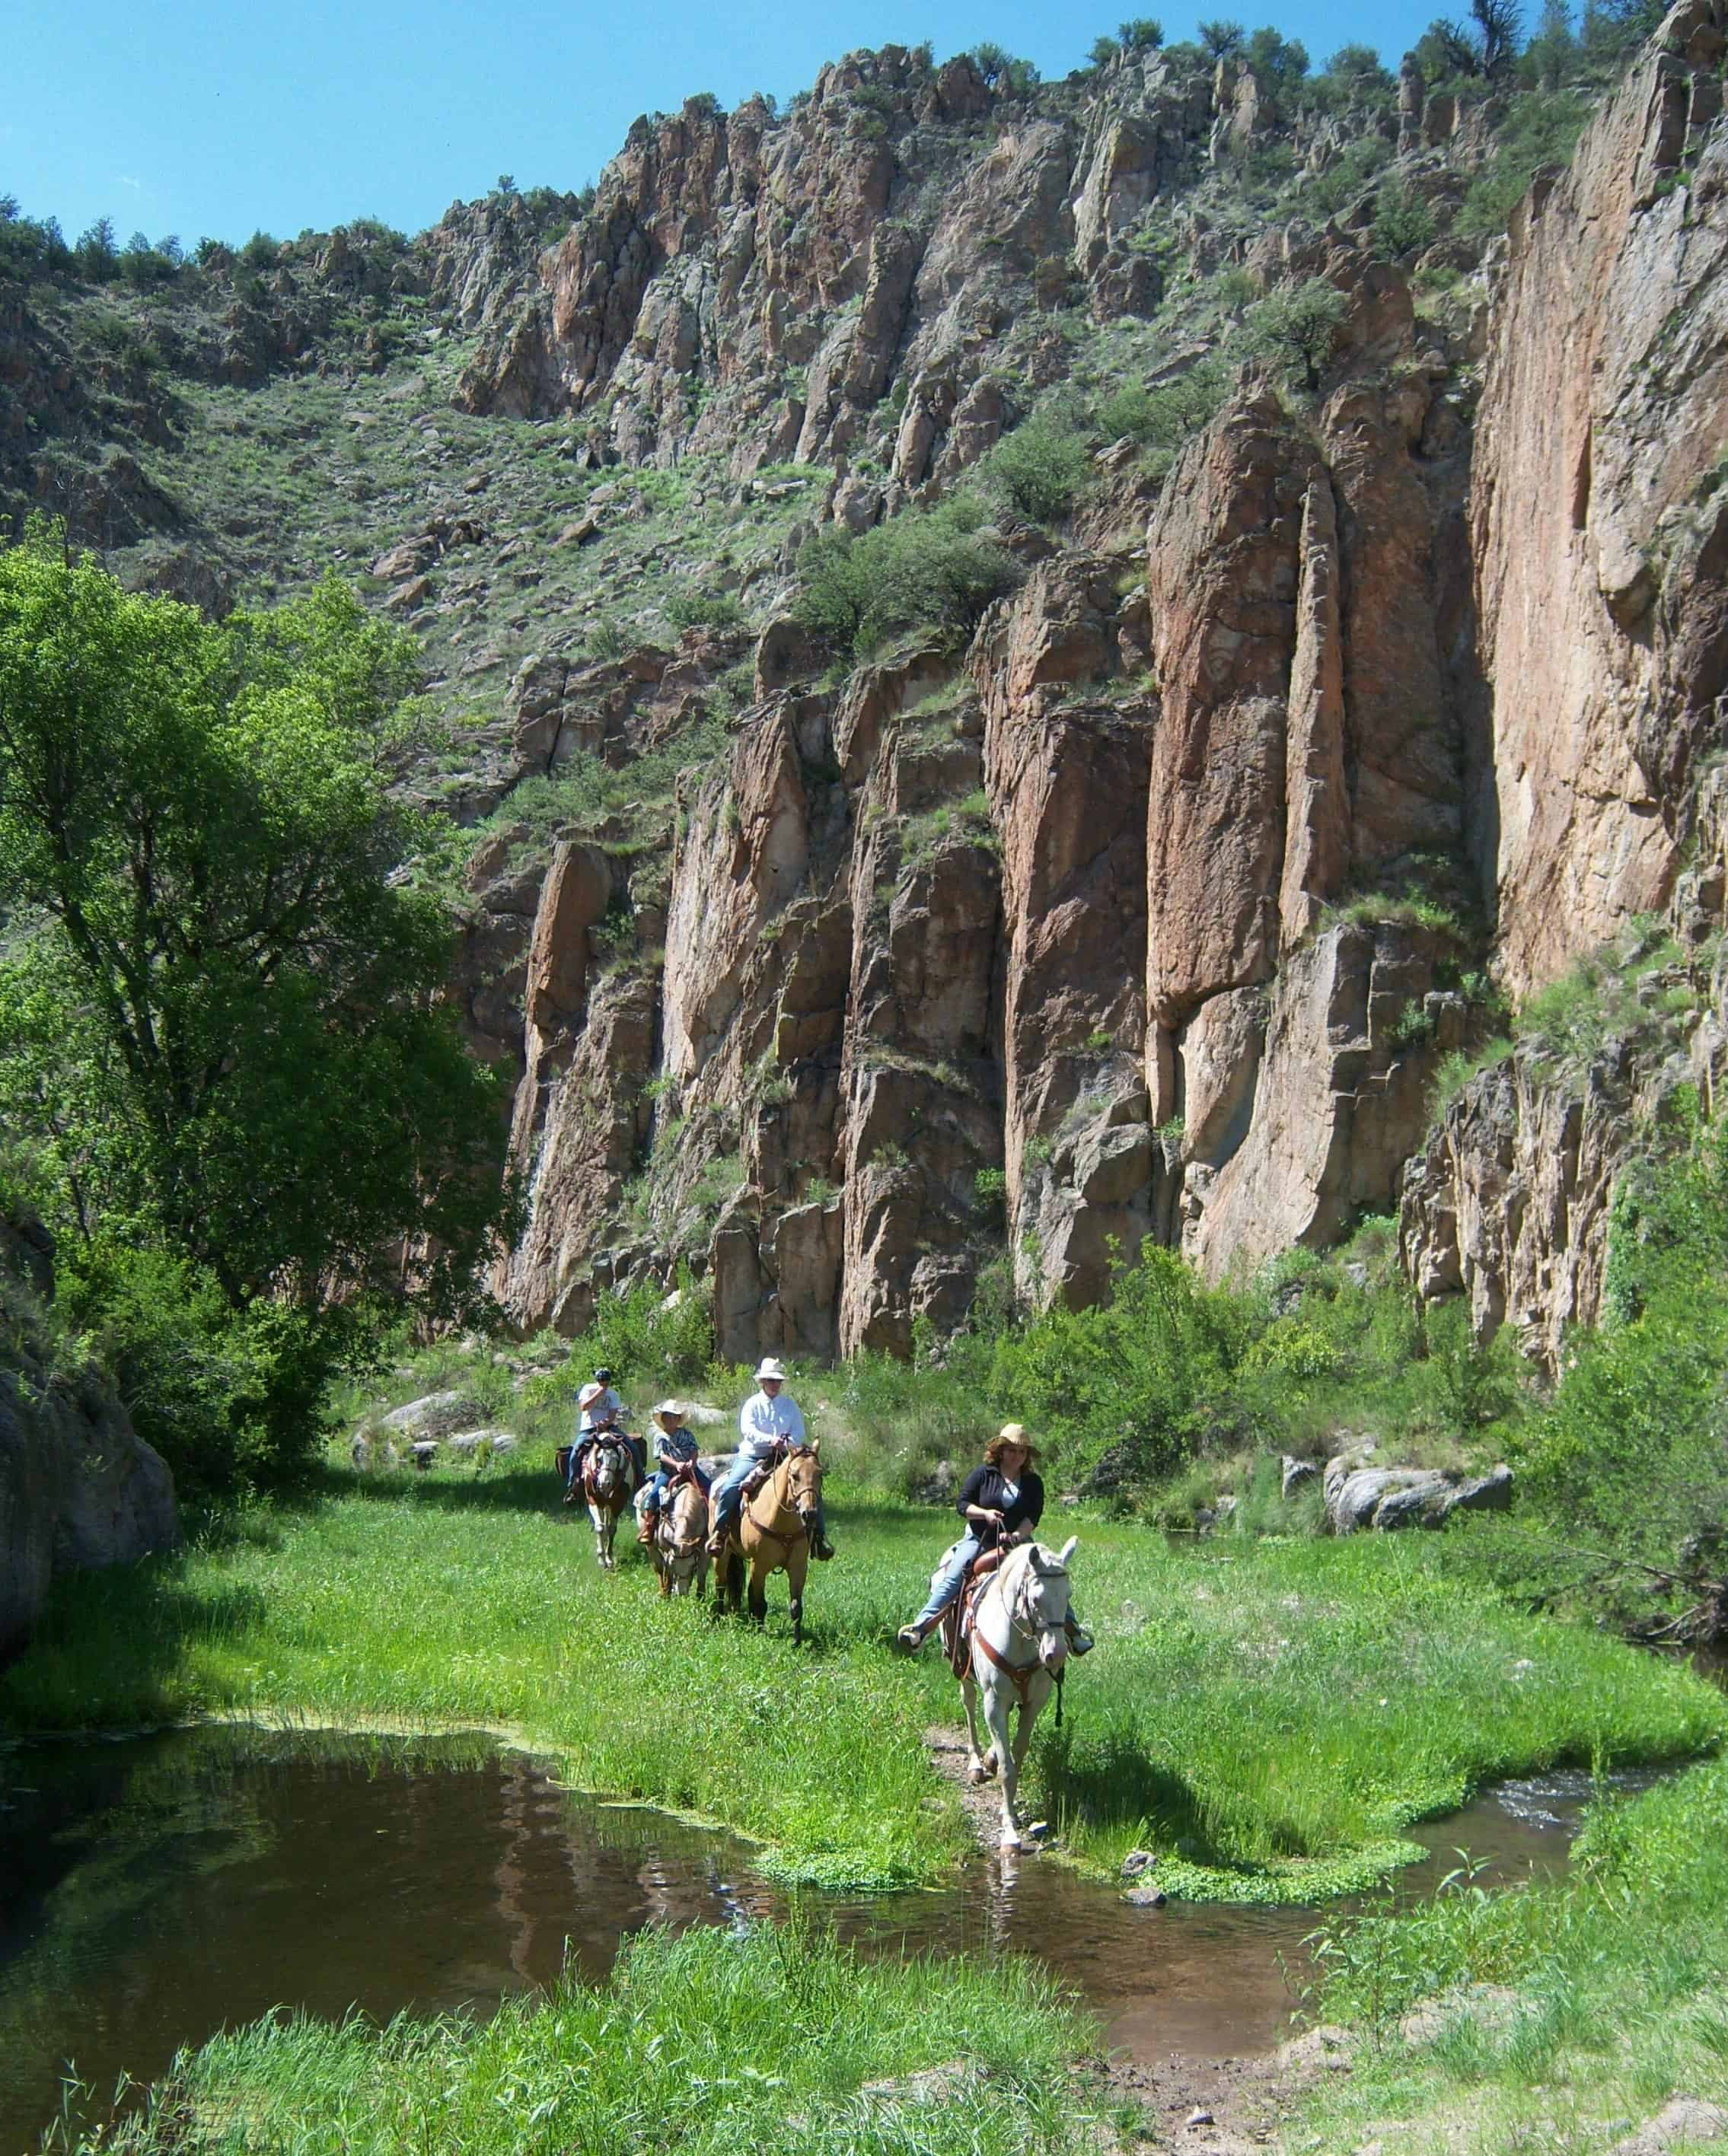 5 Common Misconceptions About the Gila National Forest